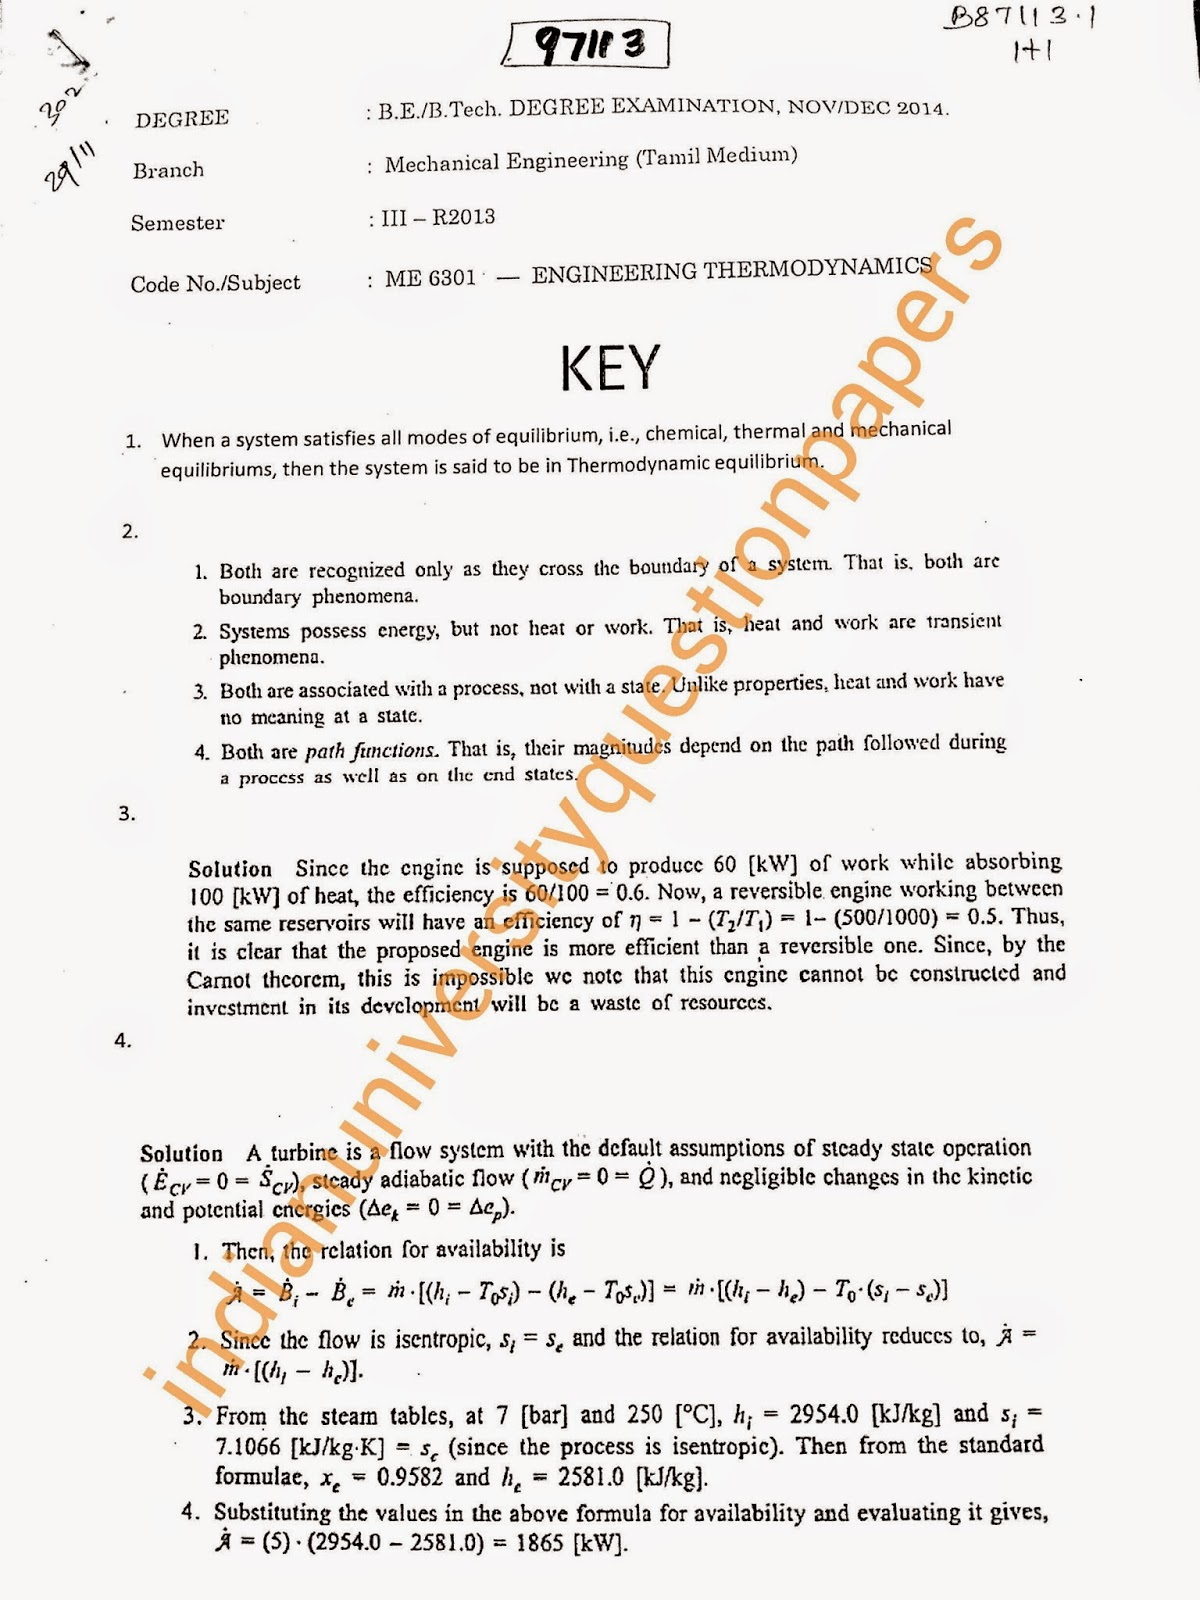 total quality management anna university question papers 2013 Total quality management bharathiar university question papers mba - sevices management - total quality service management - 2009 question papers view / download the question add to favorites mba – total quality management – 2009.